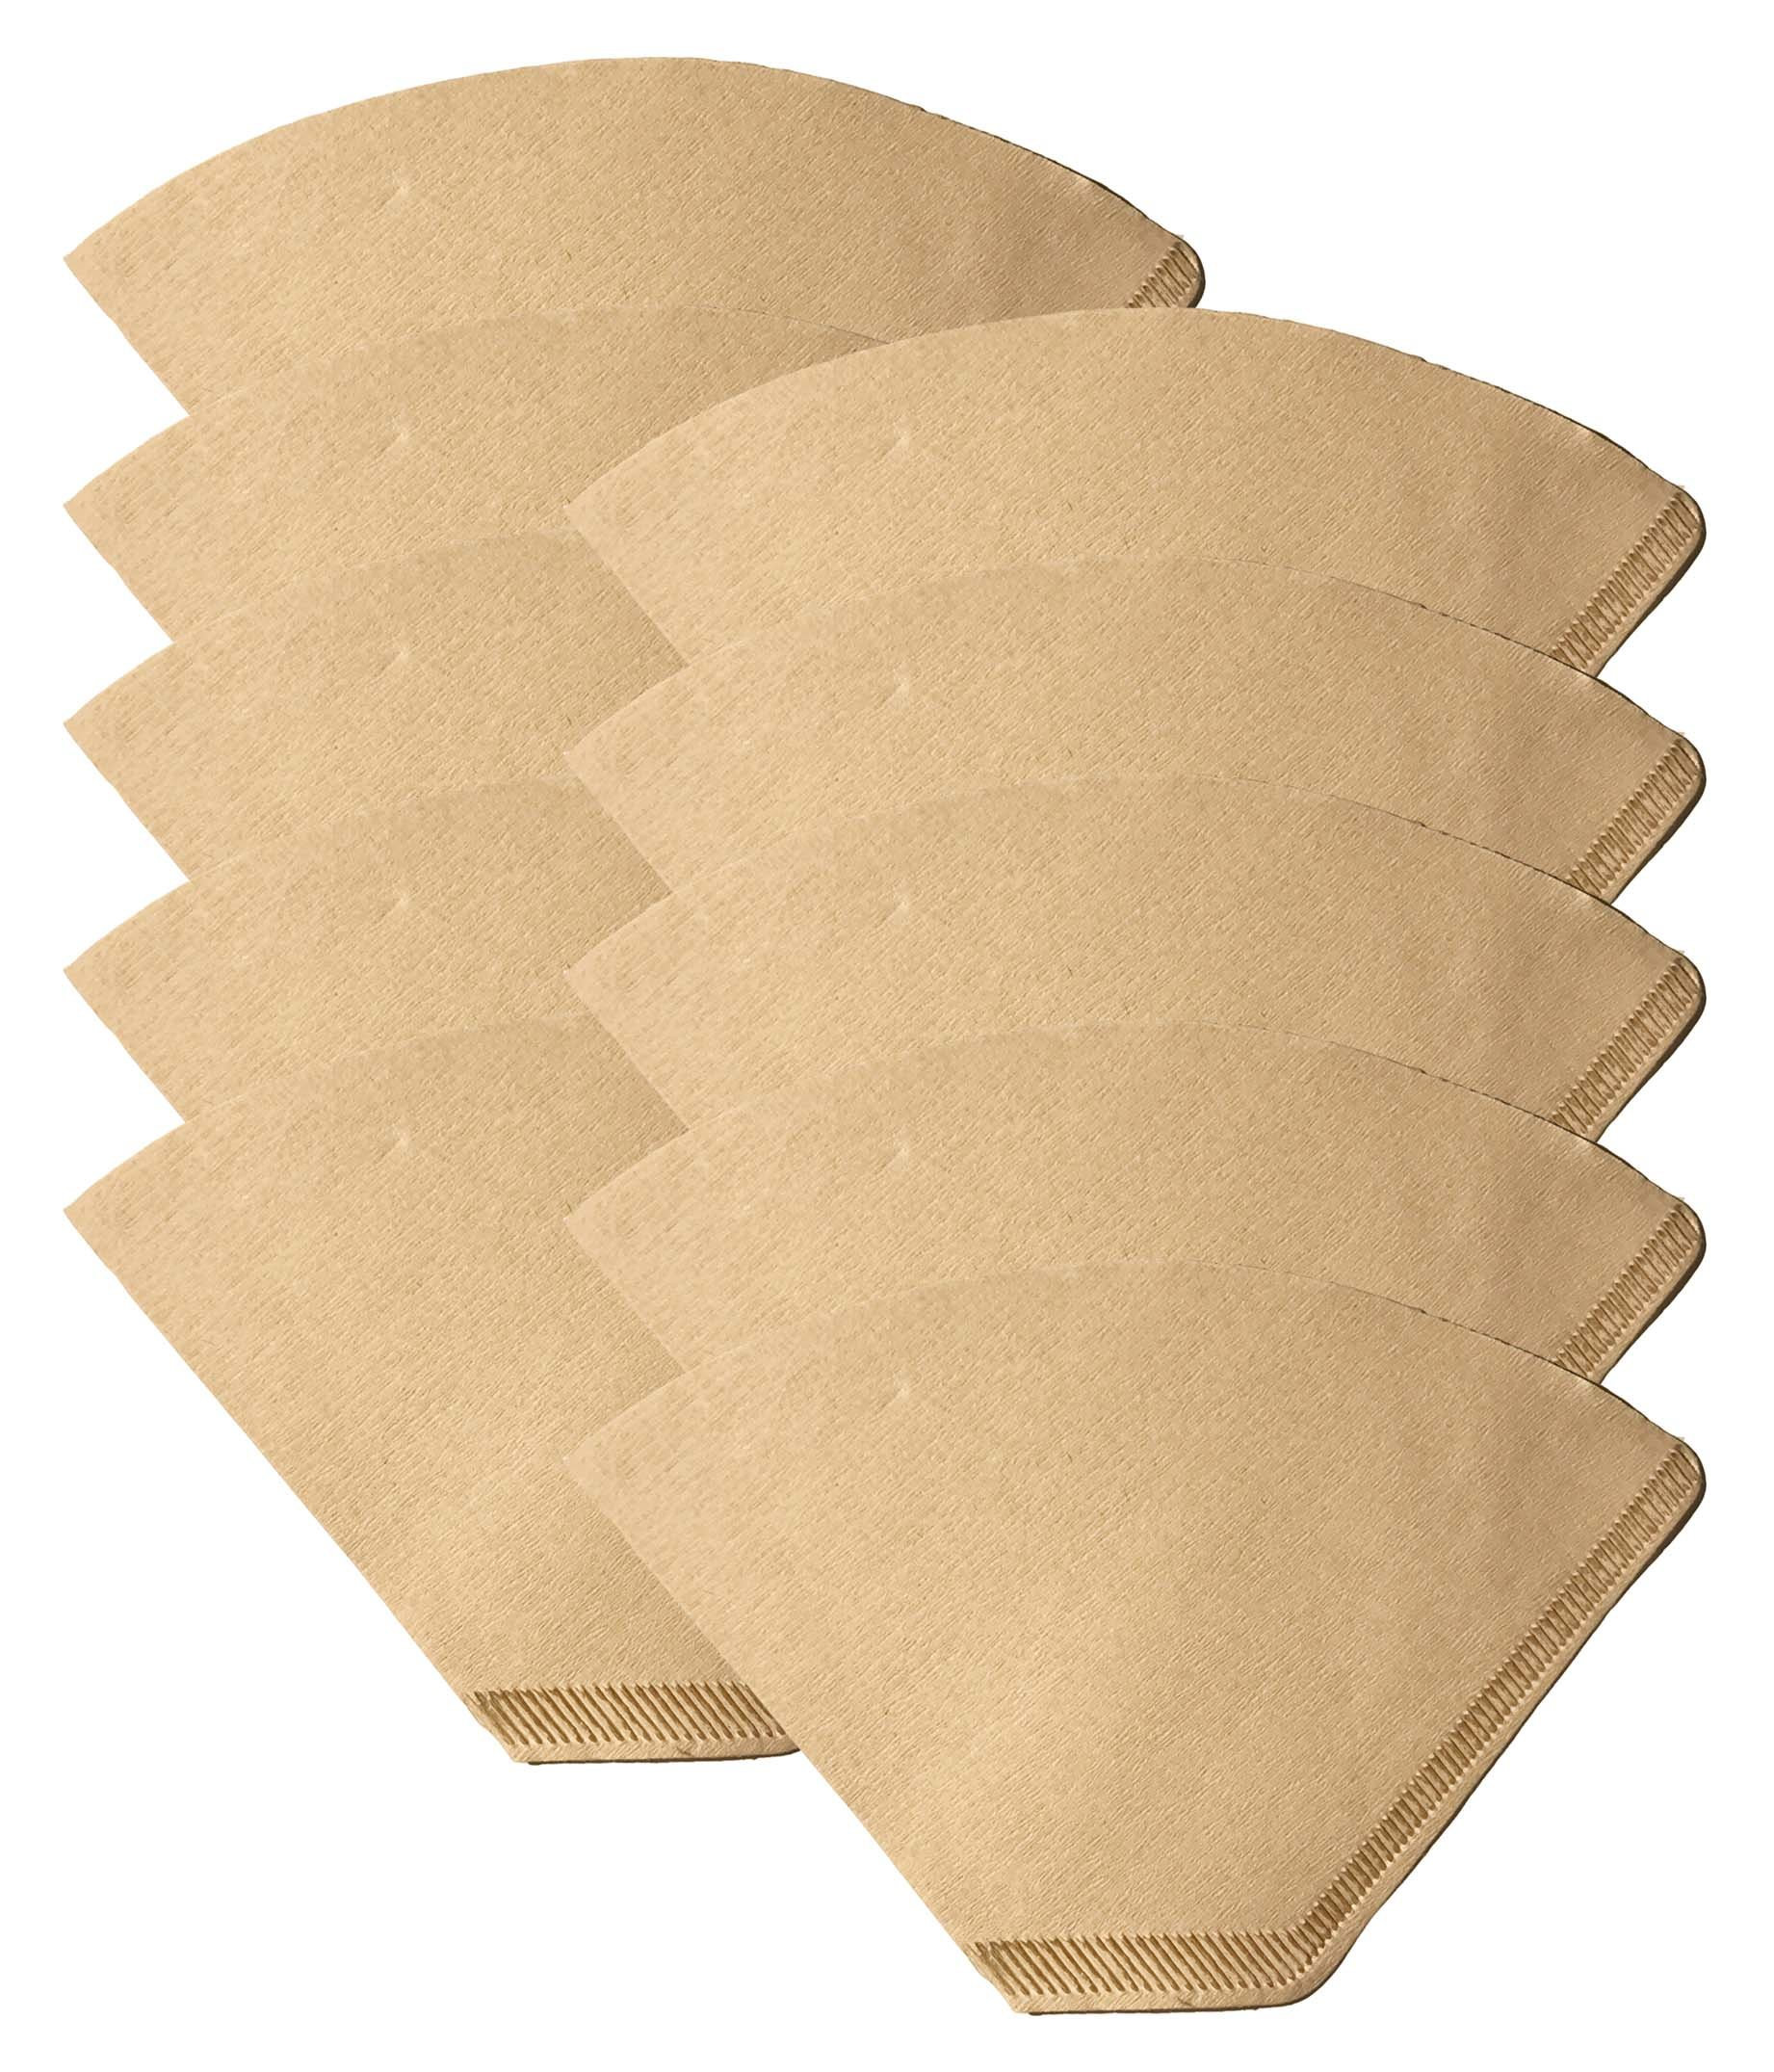 1000 Replacements for #2 Coffee Filters Unbleached, All Natural, Brew Brown Paper Cone, Fits All Coffee Makers With #2 Number 2 Coffee Basket Holder including Melitta, by Think Crucial by Think Crucial